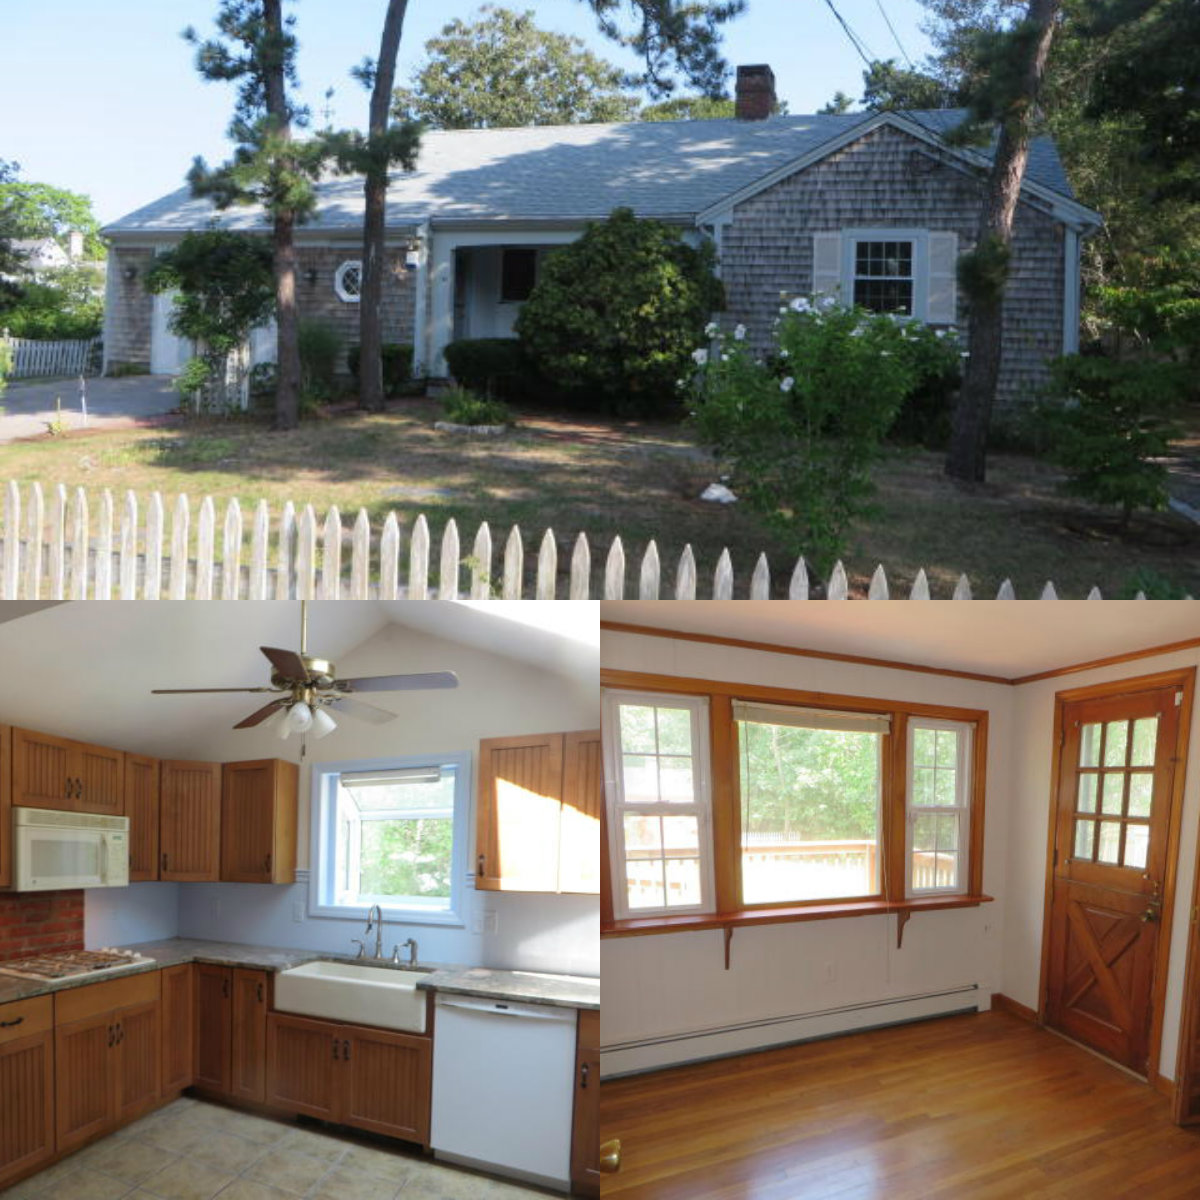 Images of 44 West Street in Dennis Port MA on Cape Cod